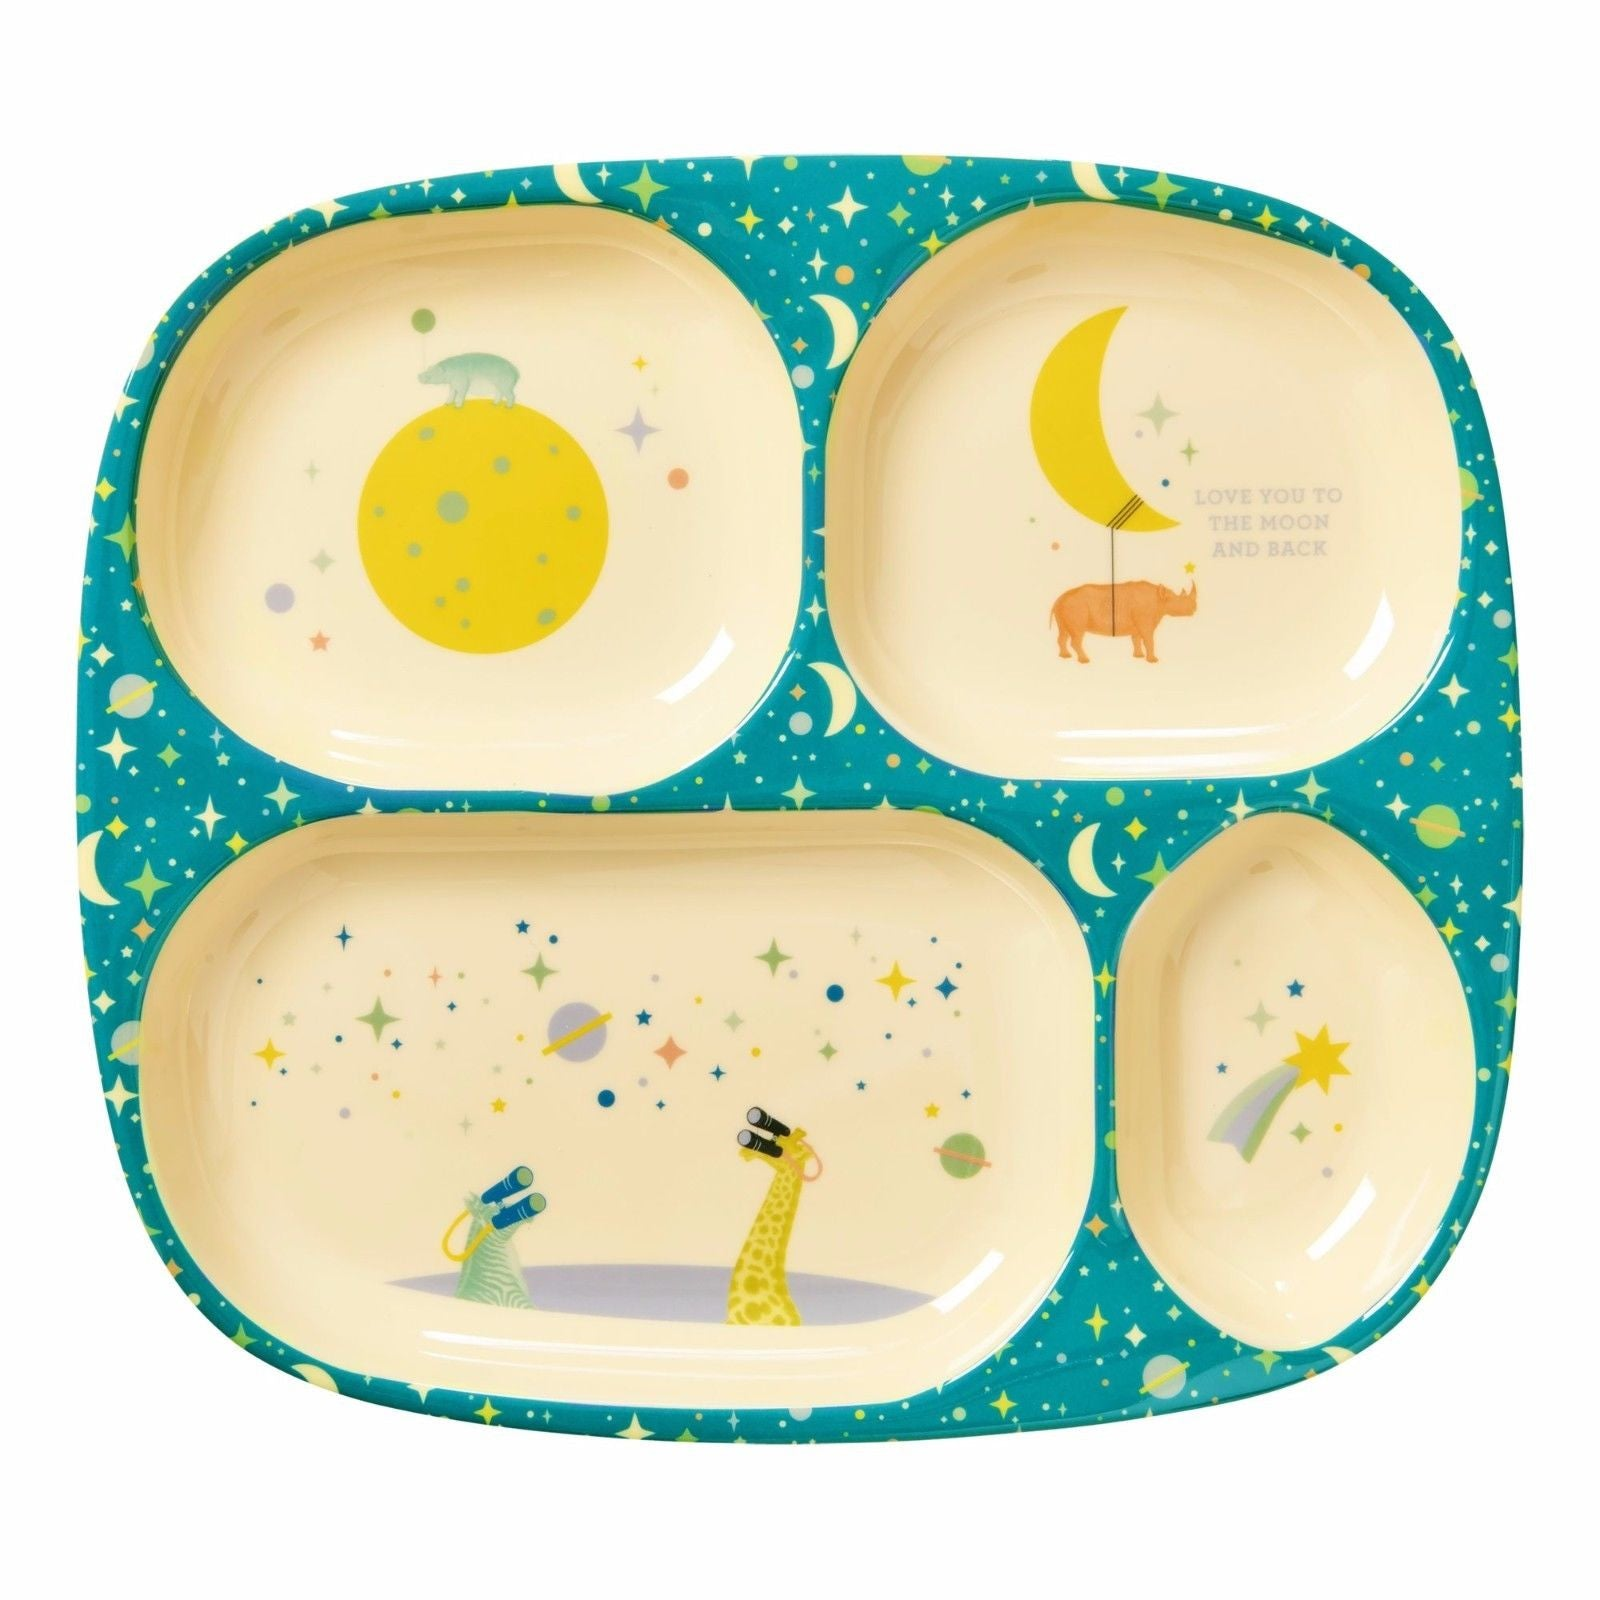 RICE DENMARK Kids 4 Room Melamine Plate with Universe Print - Blue